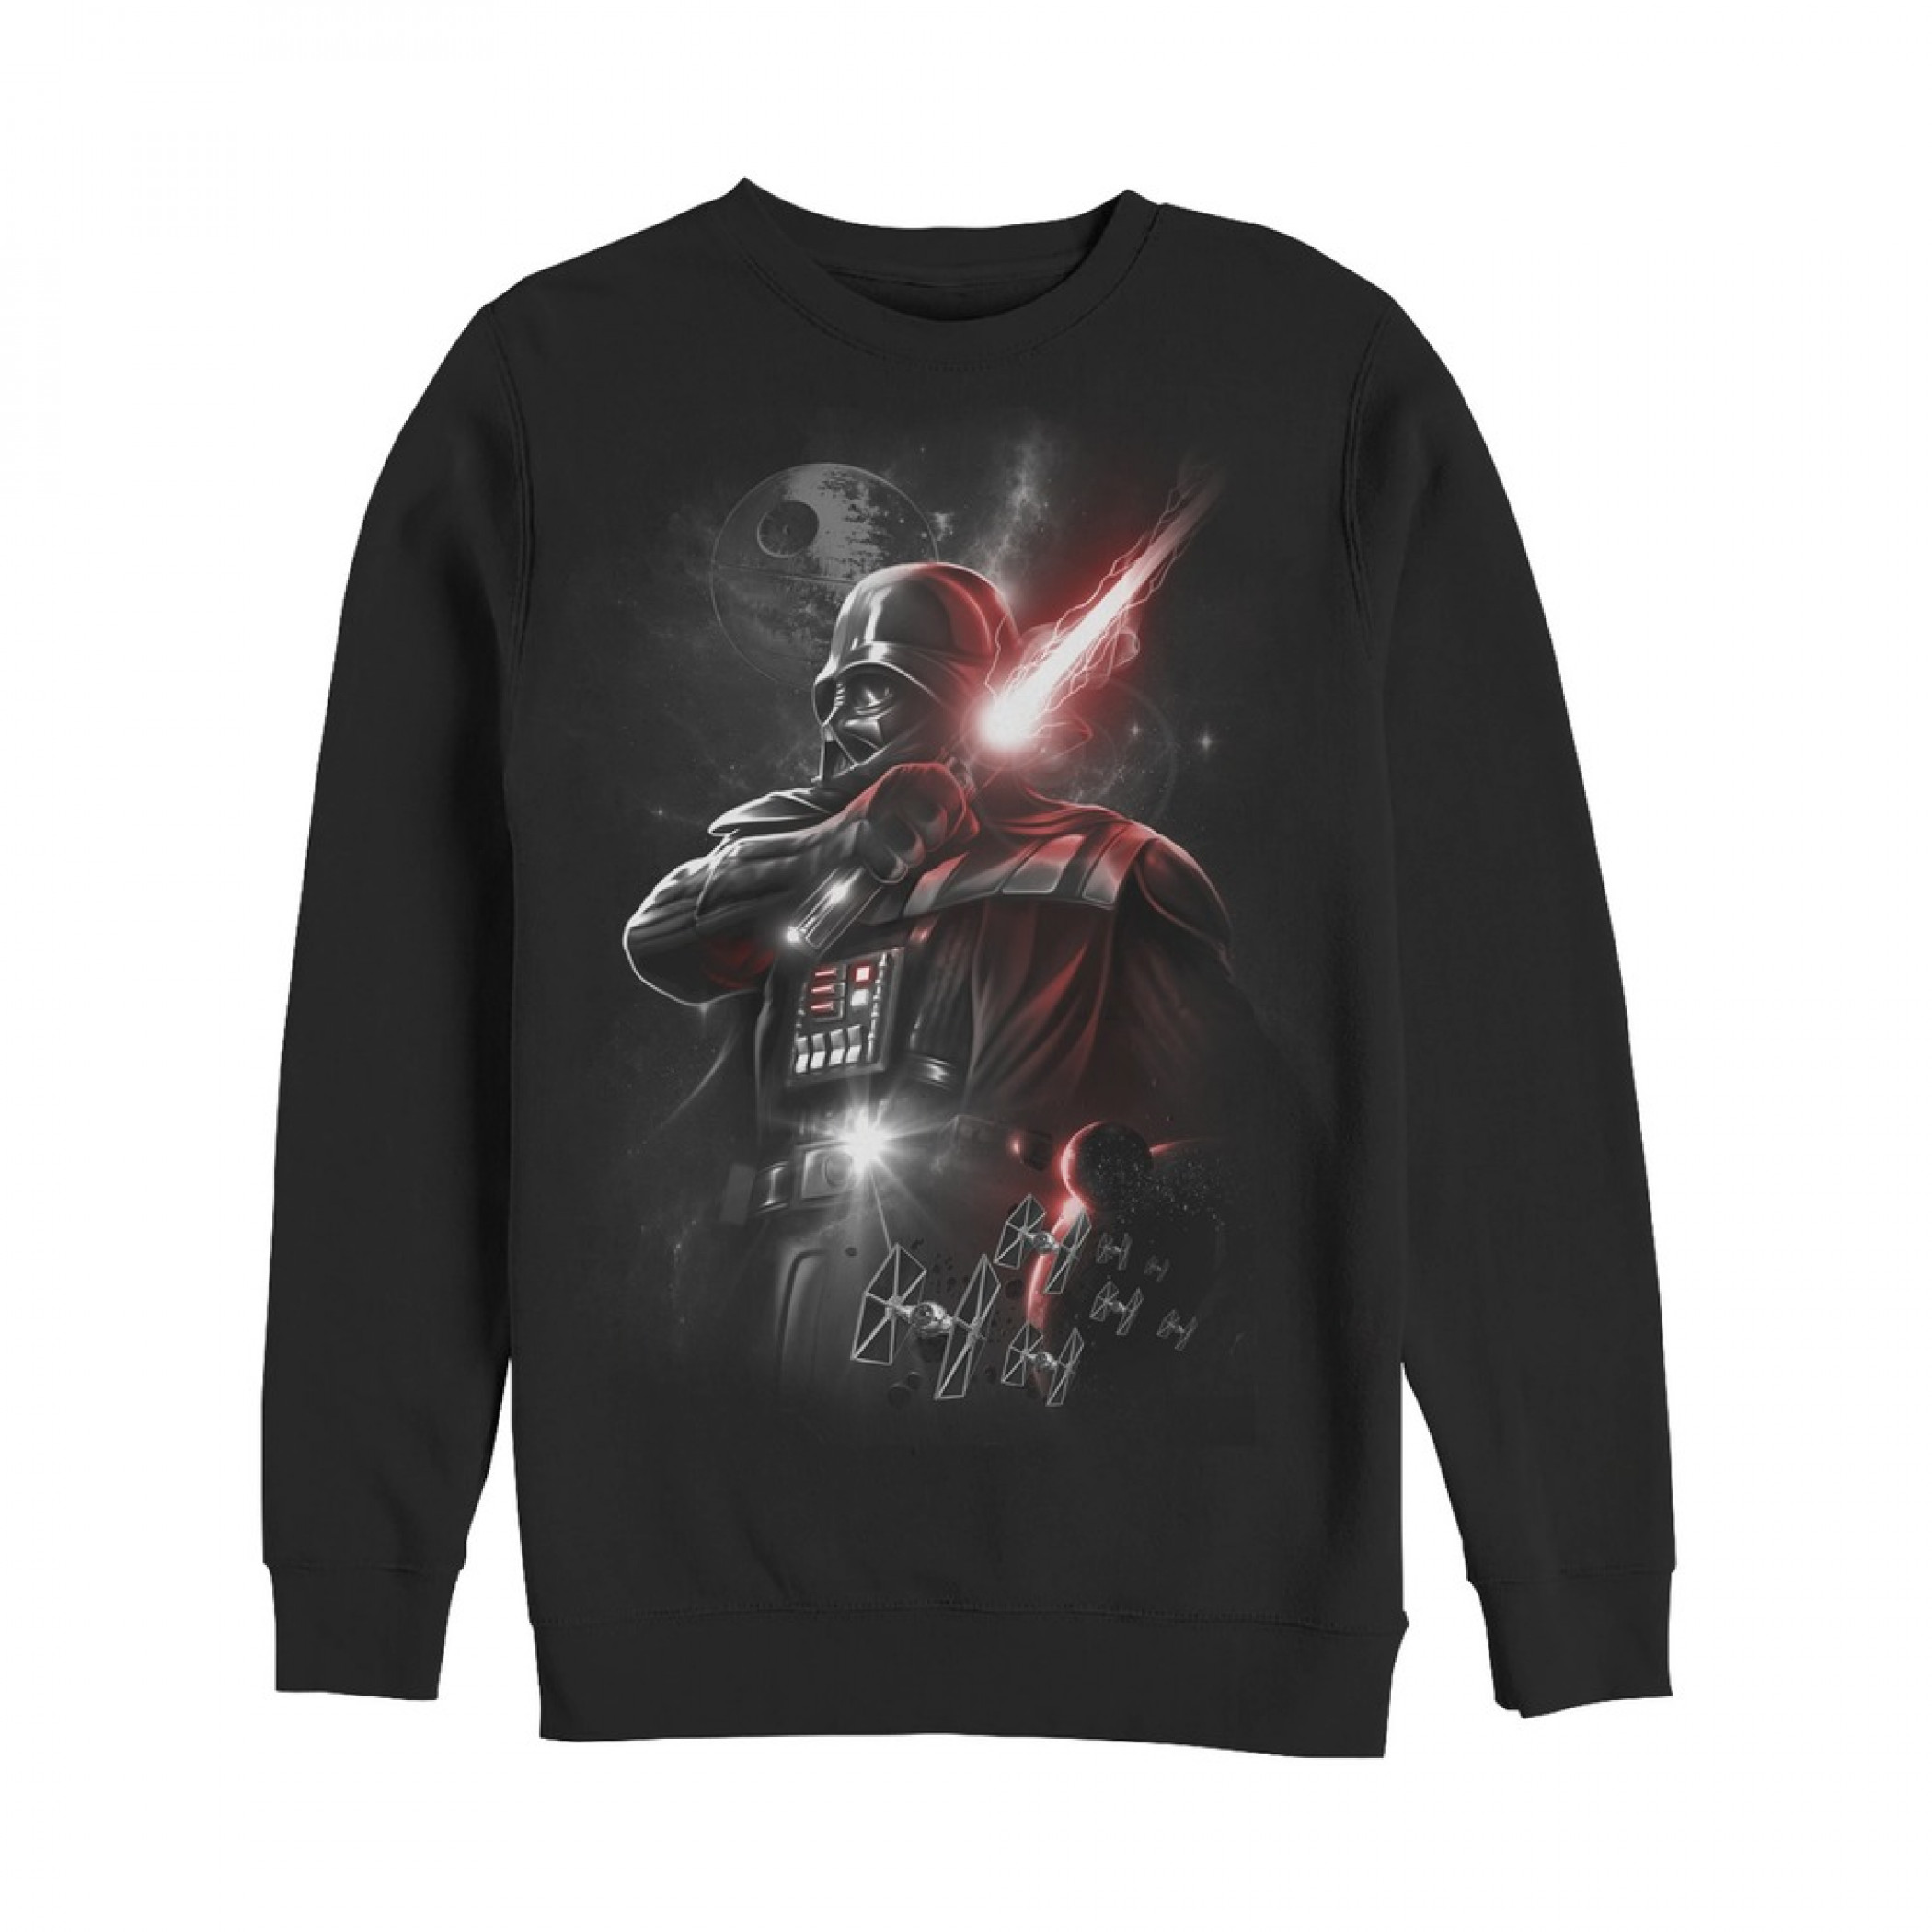 Star Wars Dark Lord of the Sith Sweatshirt